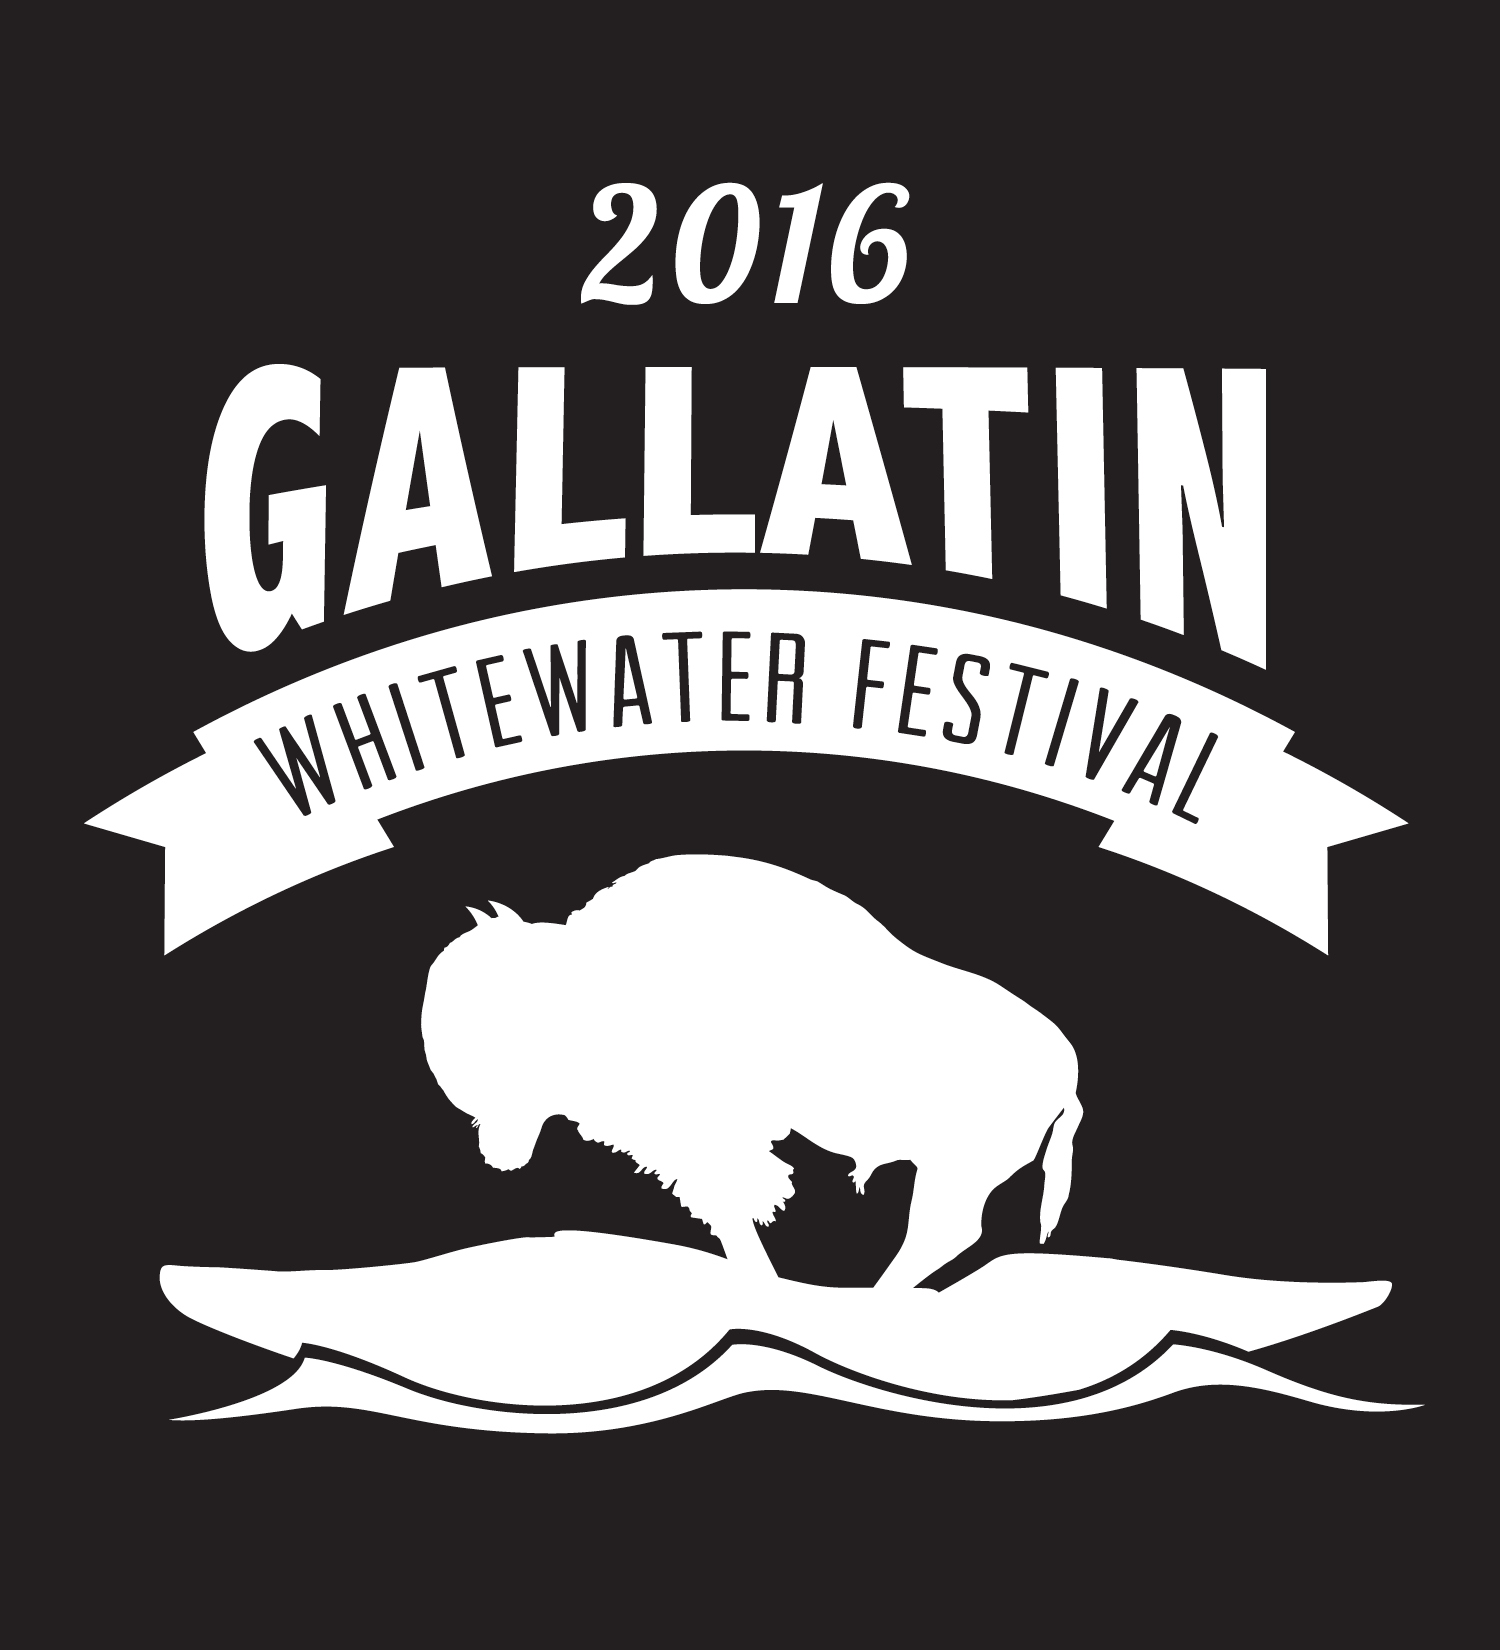 Gallatin Whitewater Festival